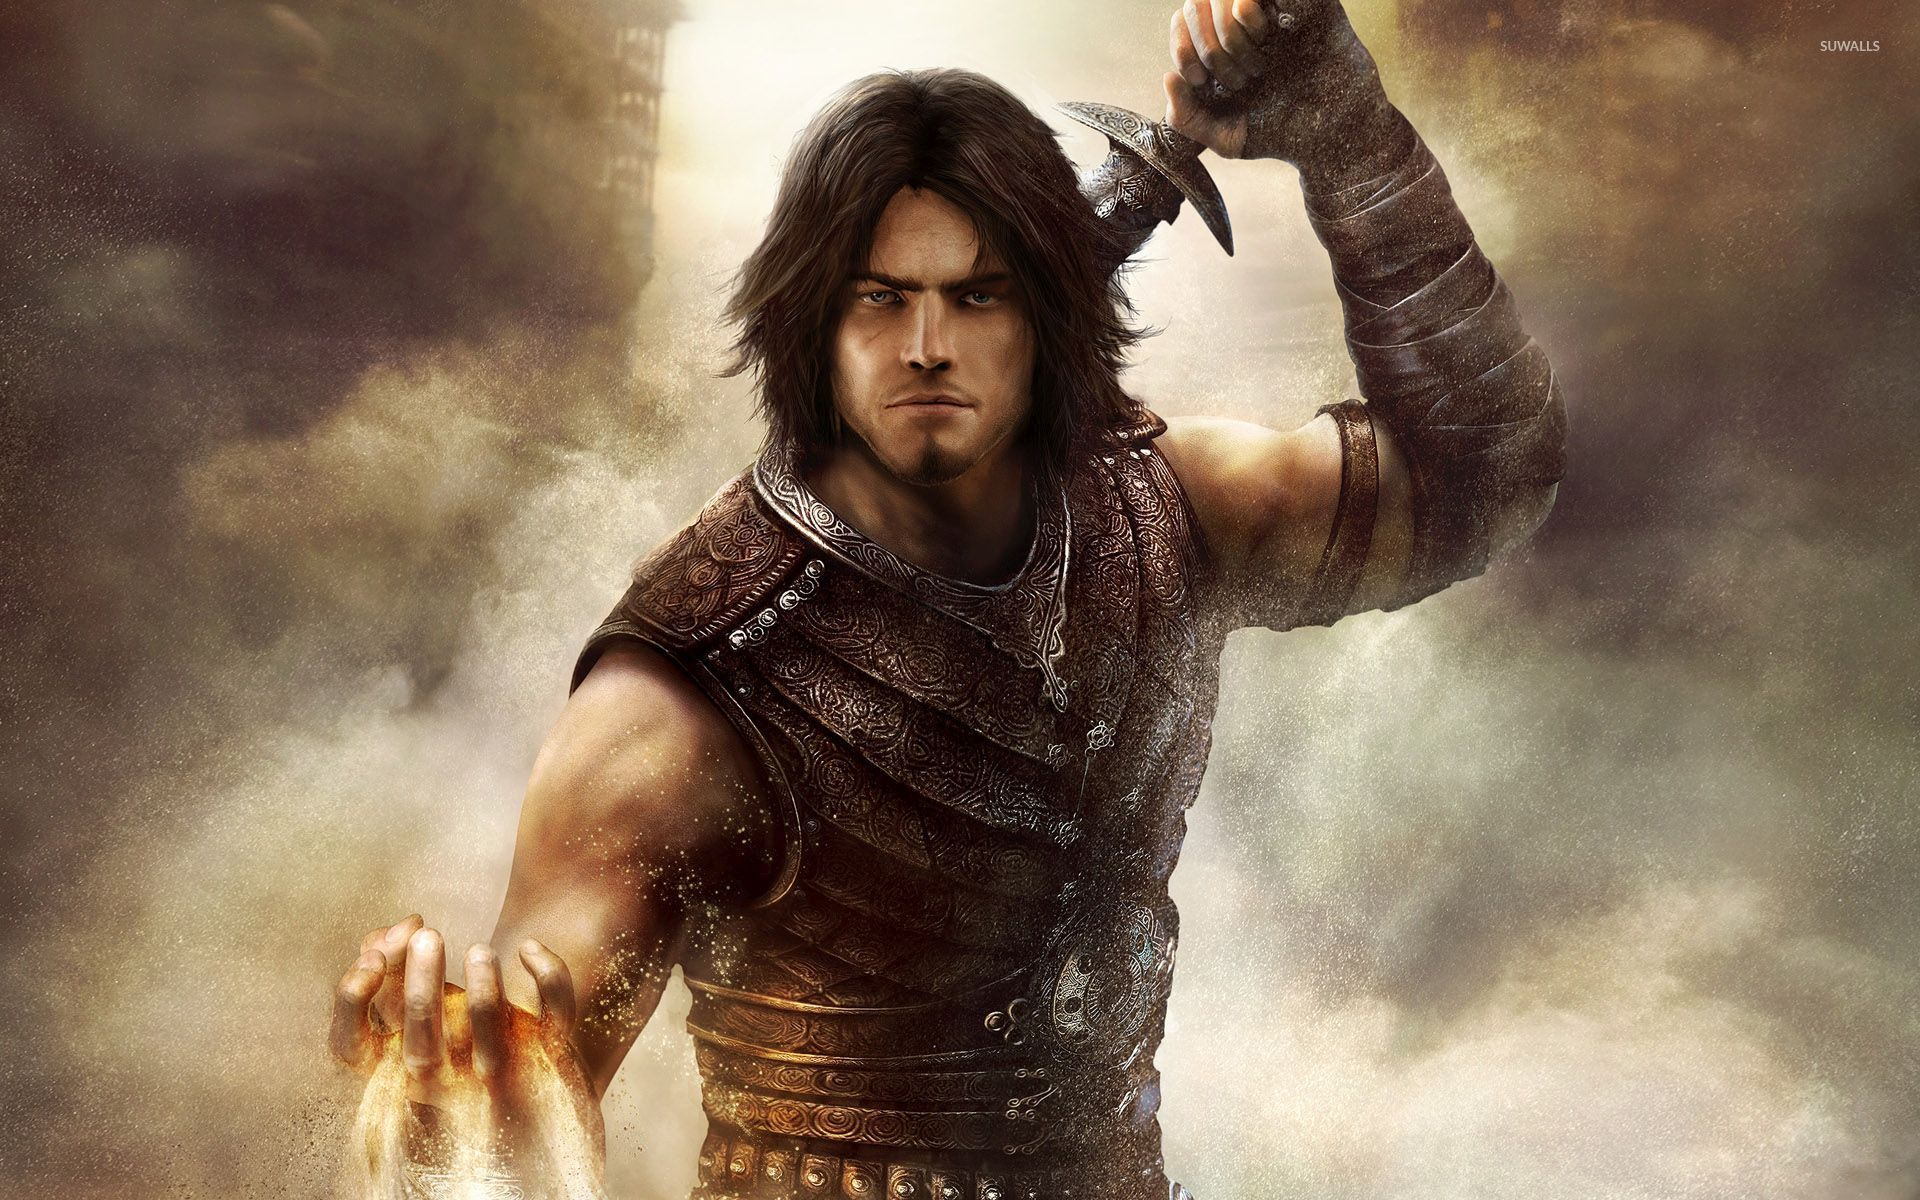 Download Wallpaper Movie Prince Persia - prince-of-persia-with-a-sword-54607-1920x1200  Gallery_358121.jpg